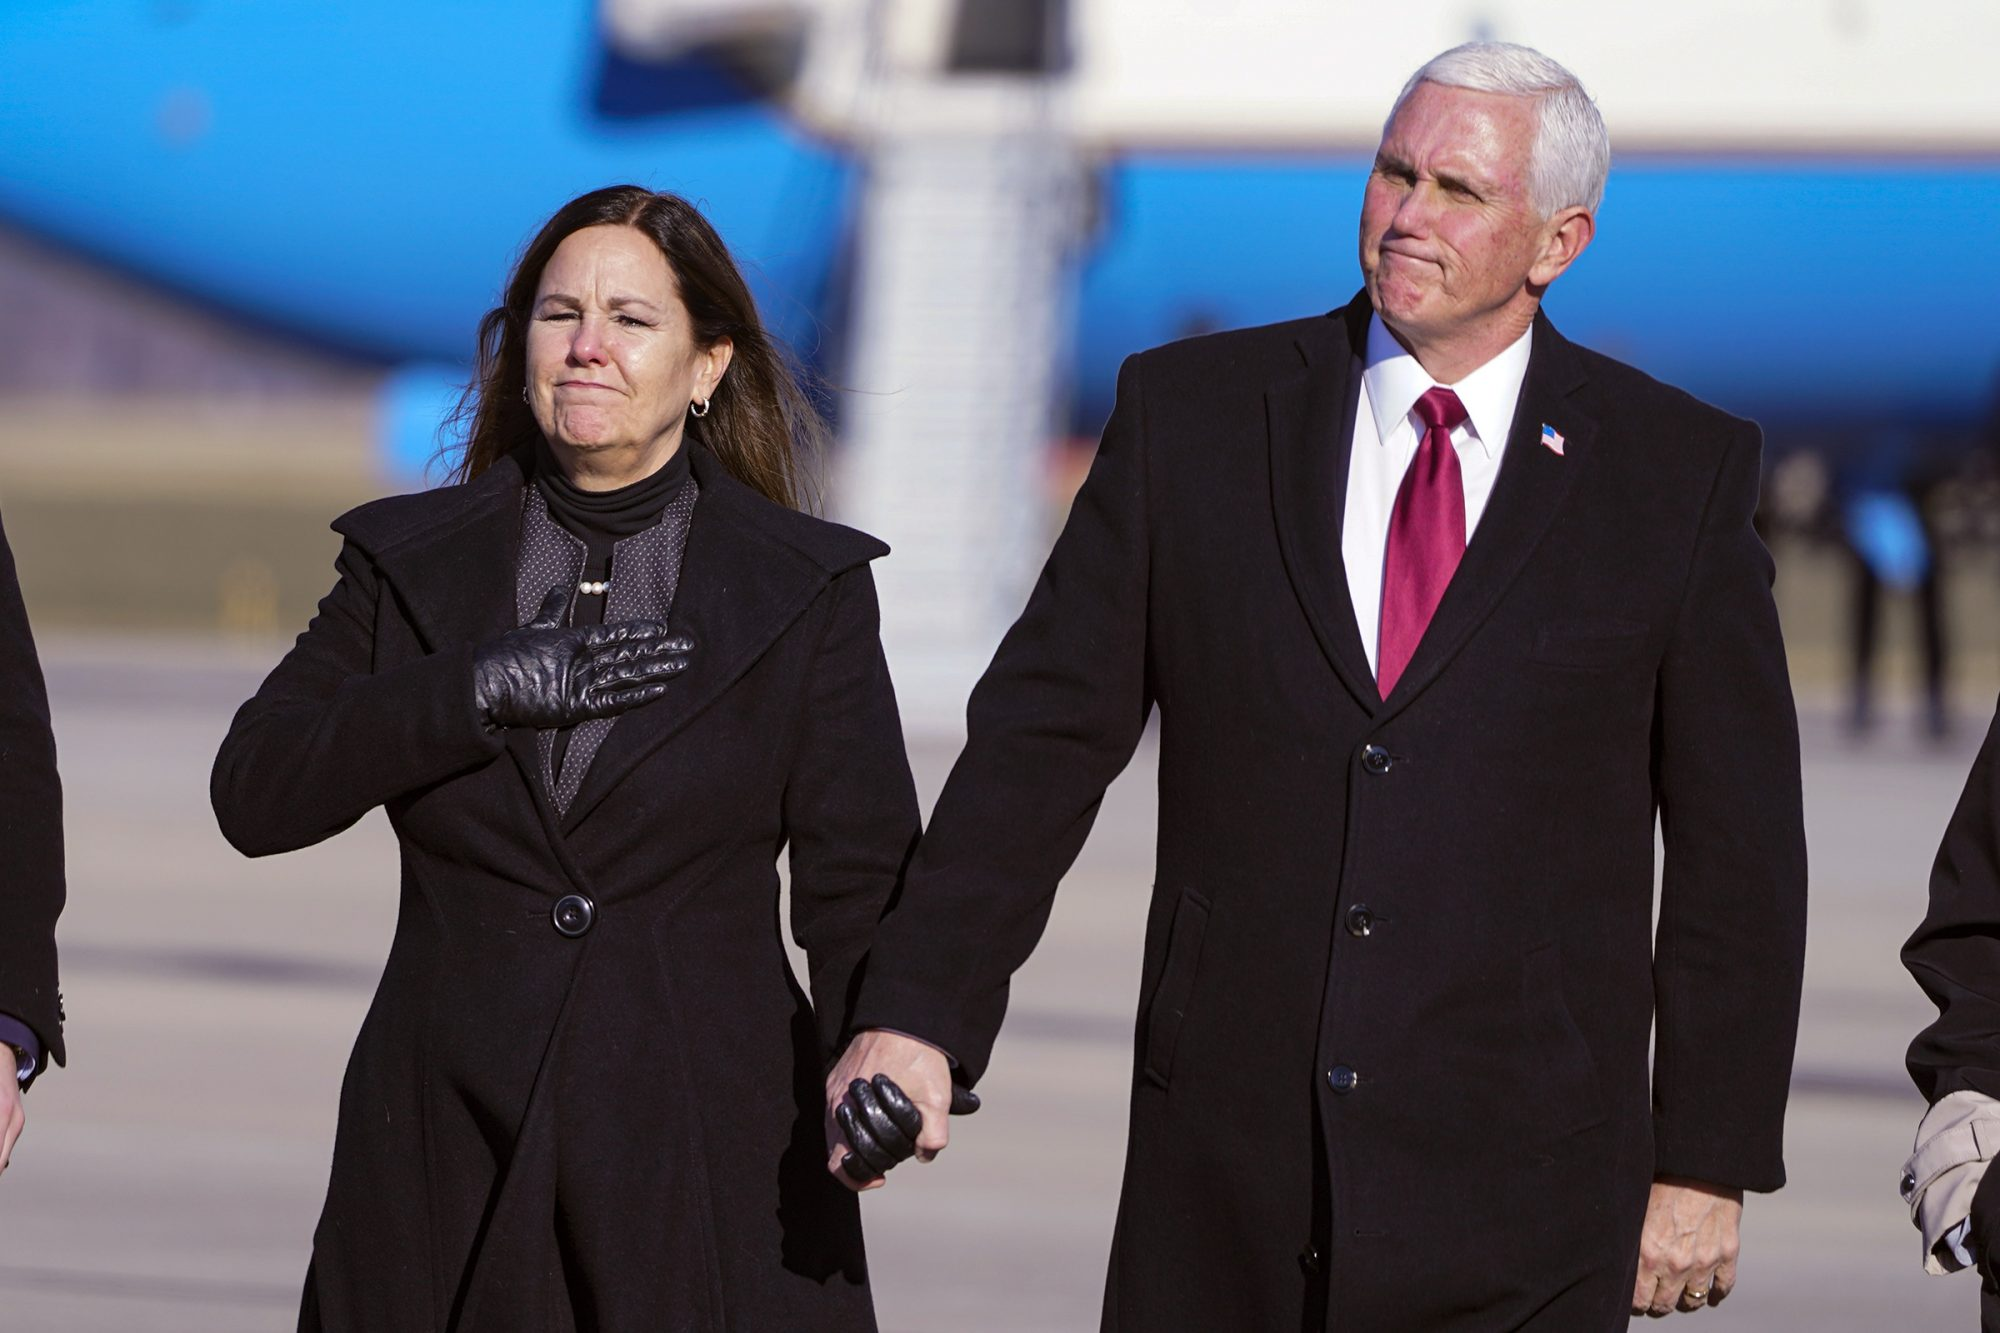 Former Vice President Mike Pence and his wife Karen walk from the plane to greet supporters after arriving back in his hometown of Columbus, Ind